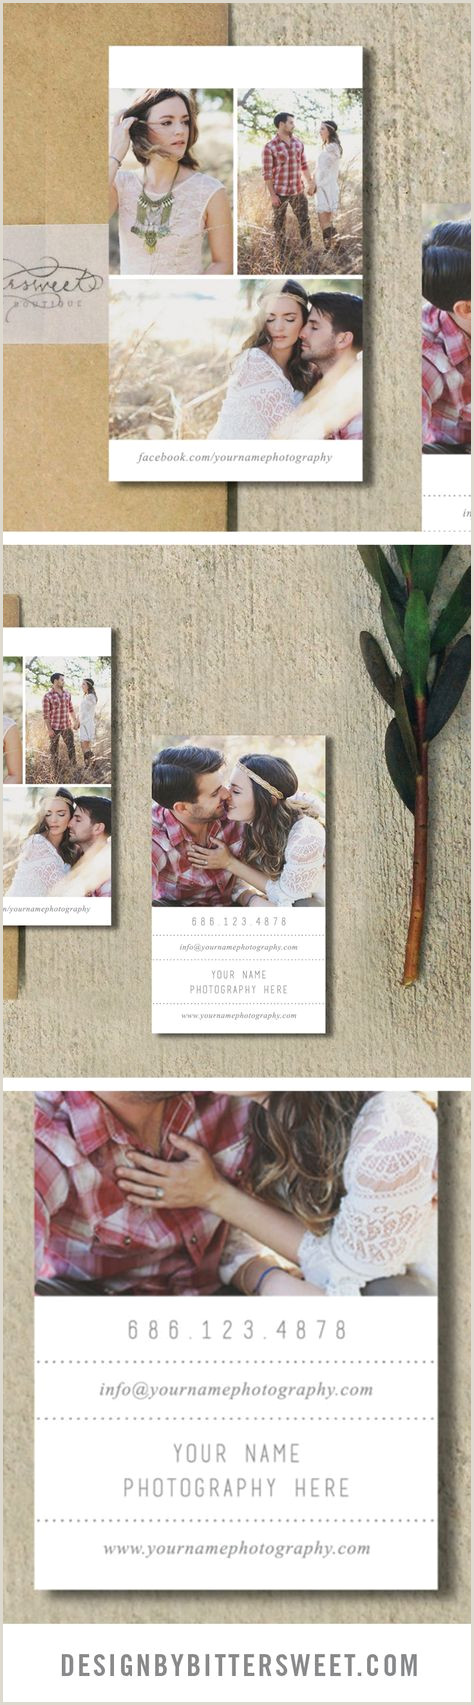 Unique Photography Business Card Graphy Business Cards Template Photographers 16 Ideas